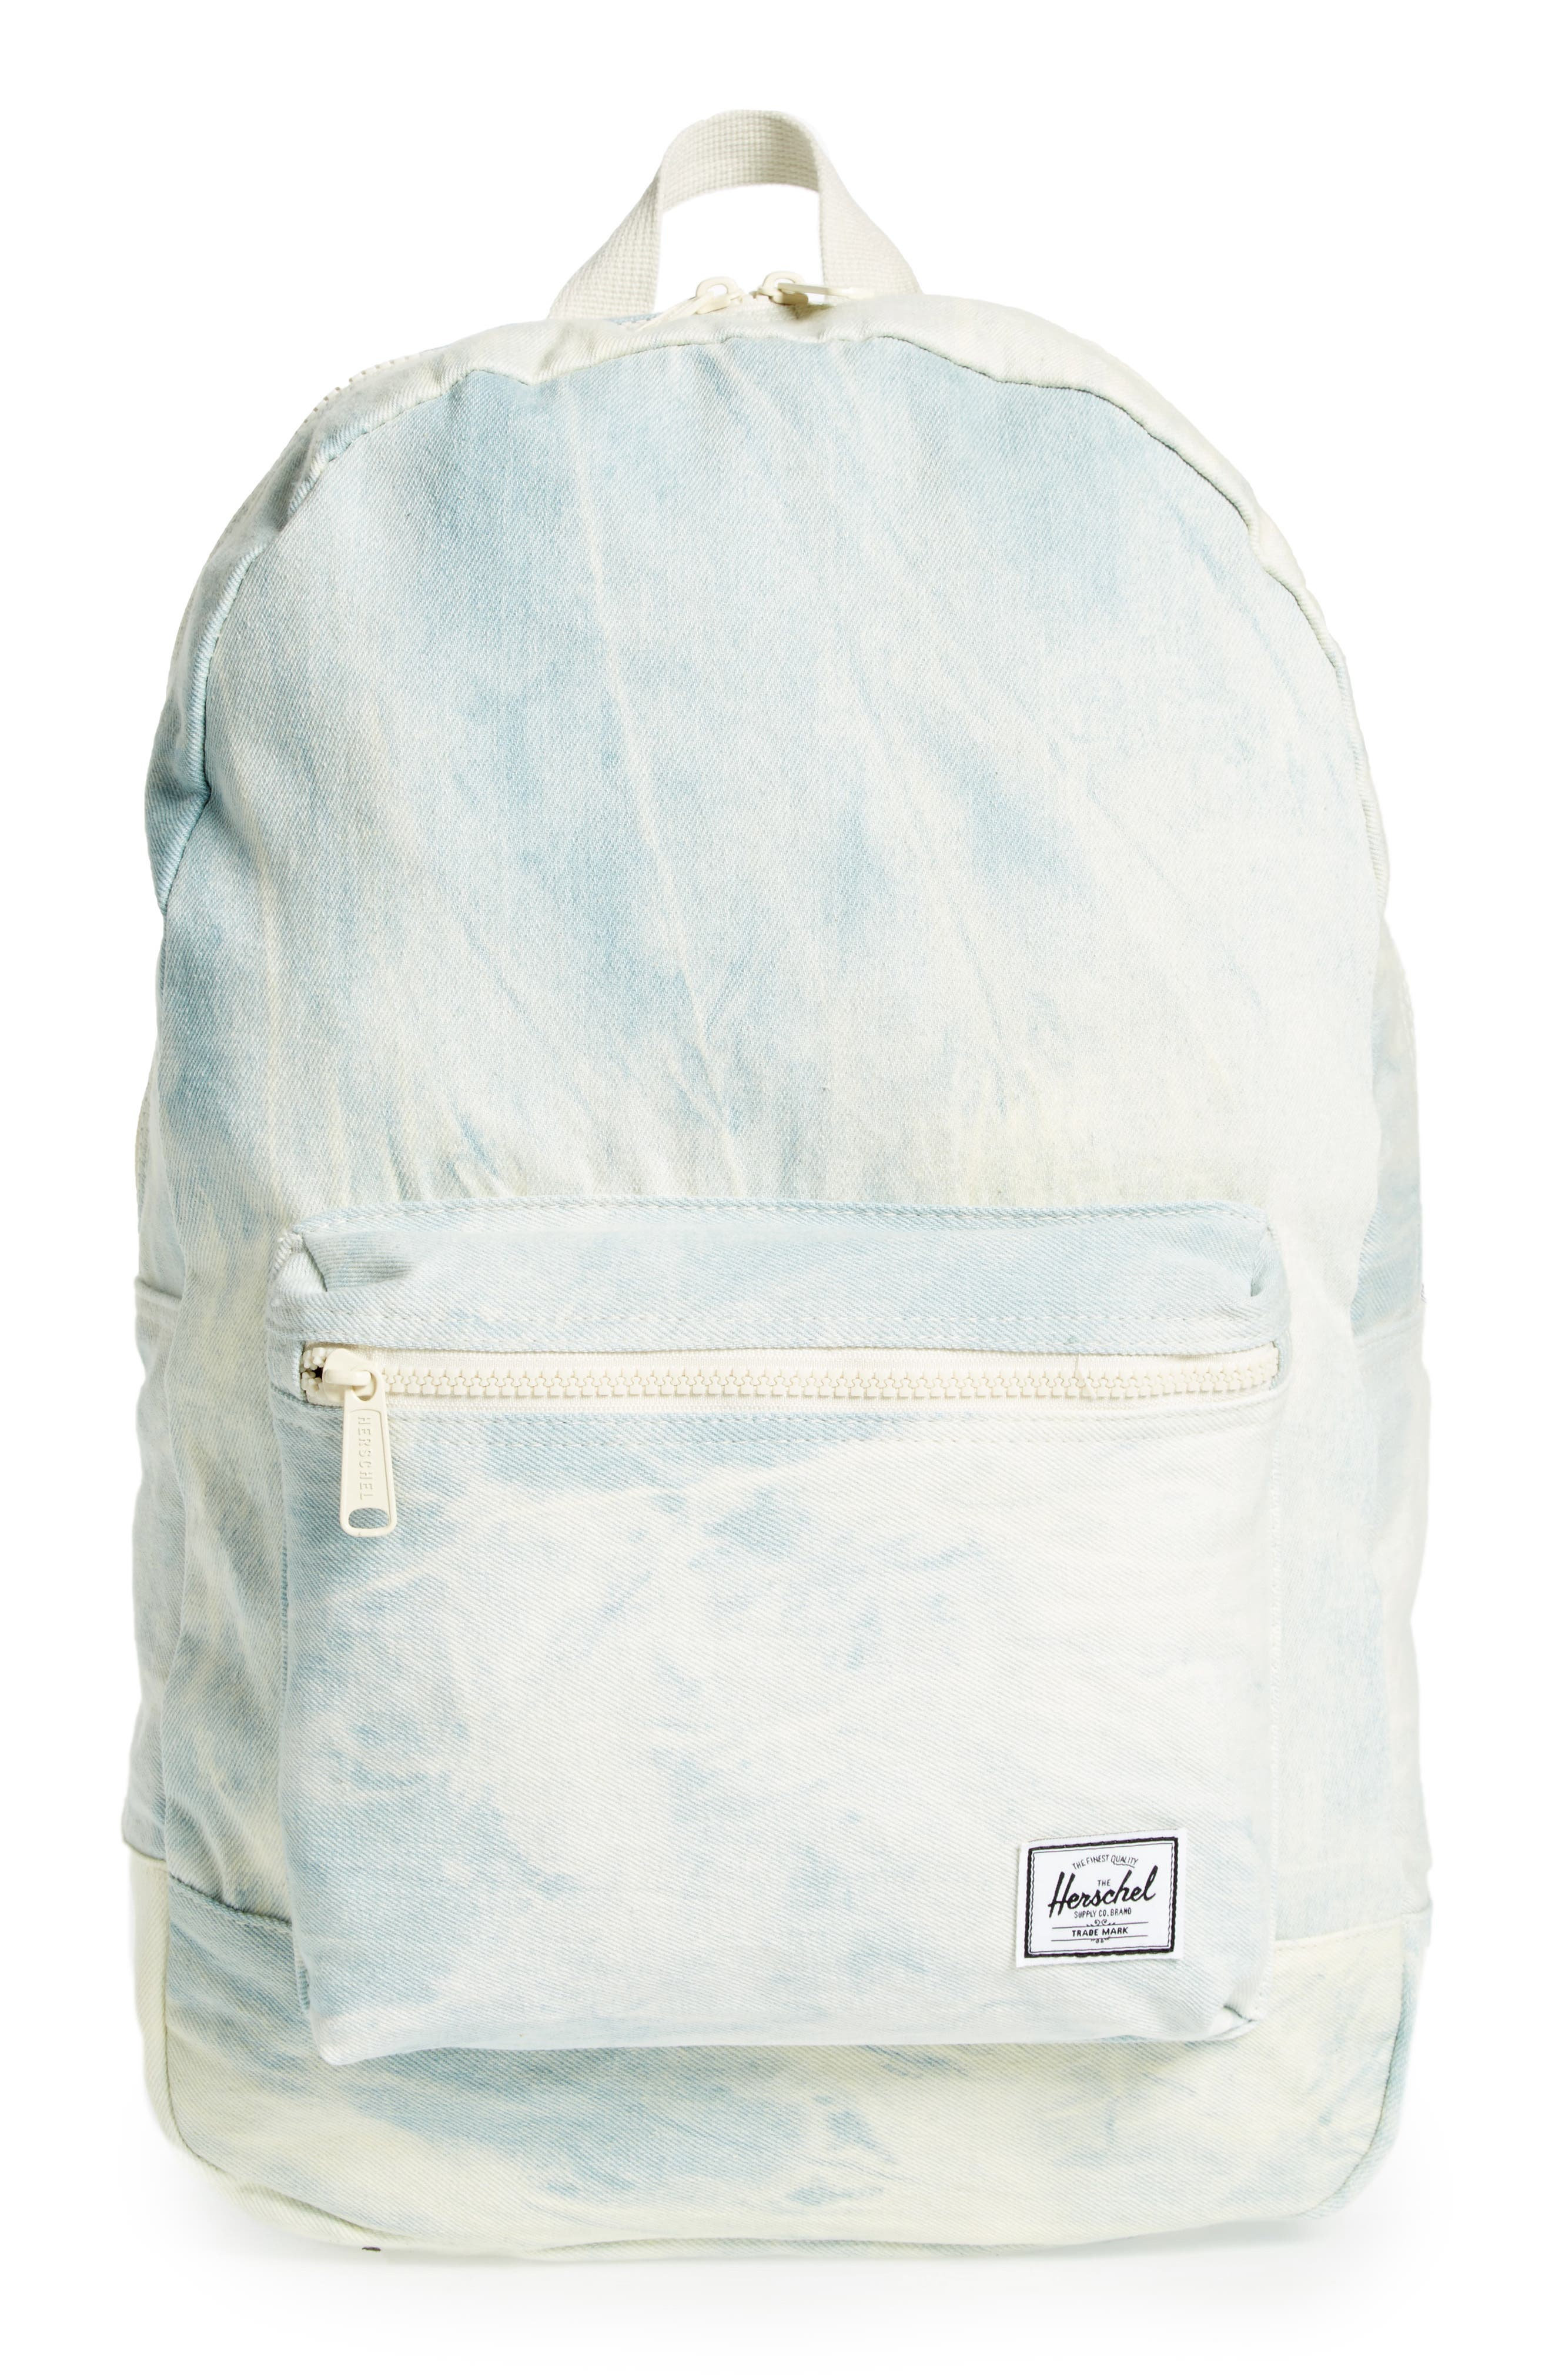 Cotton Casuals Daypack Backpack,                             Main thumbnail 8, color,